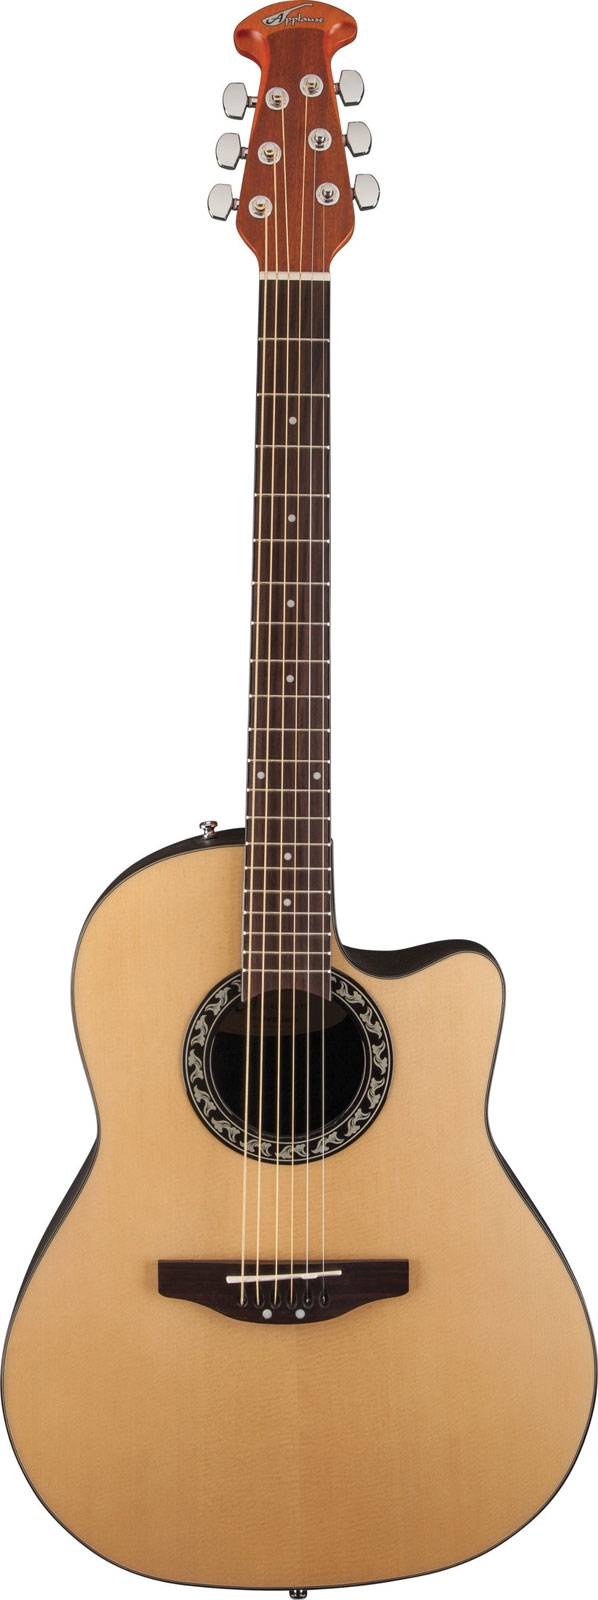 OVATION APPLAUSE BALLADEER AB24A4 NATURAL